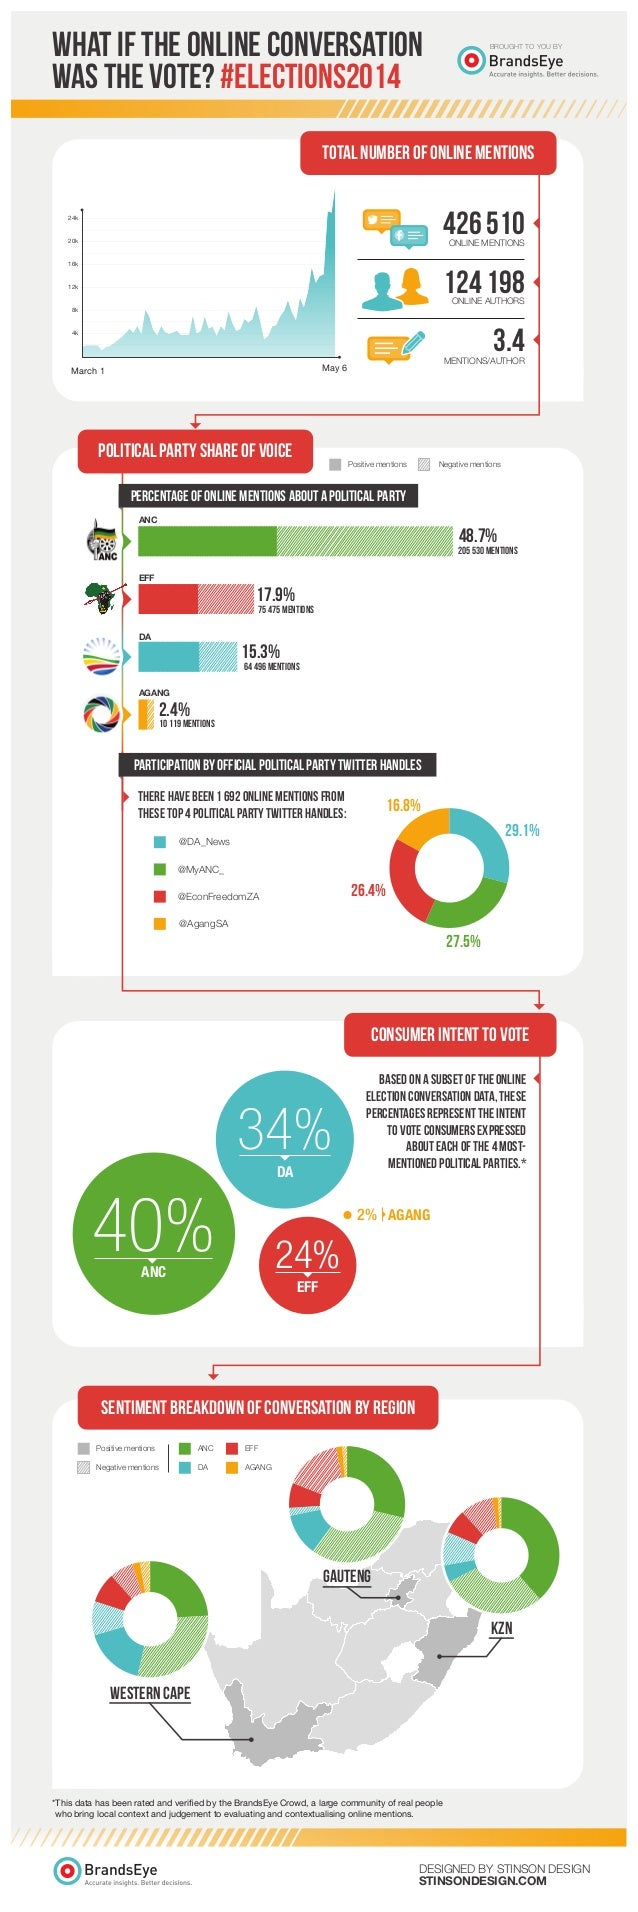 South African Elections 2014 - Online Sentiment